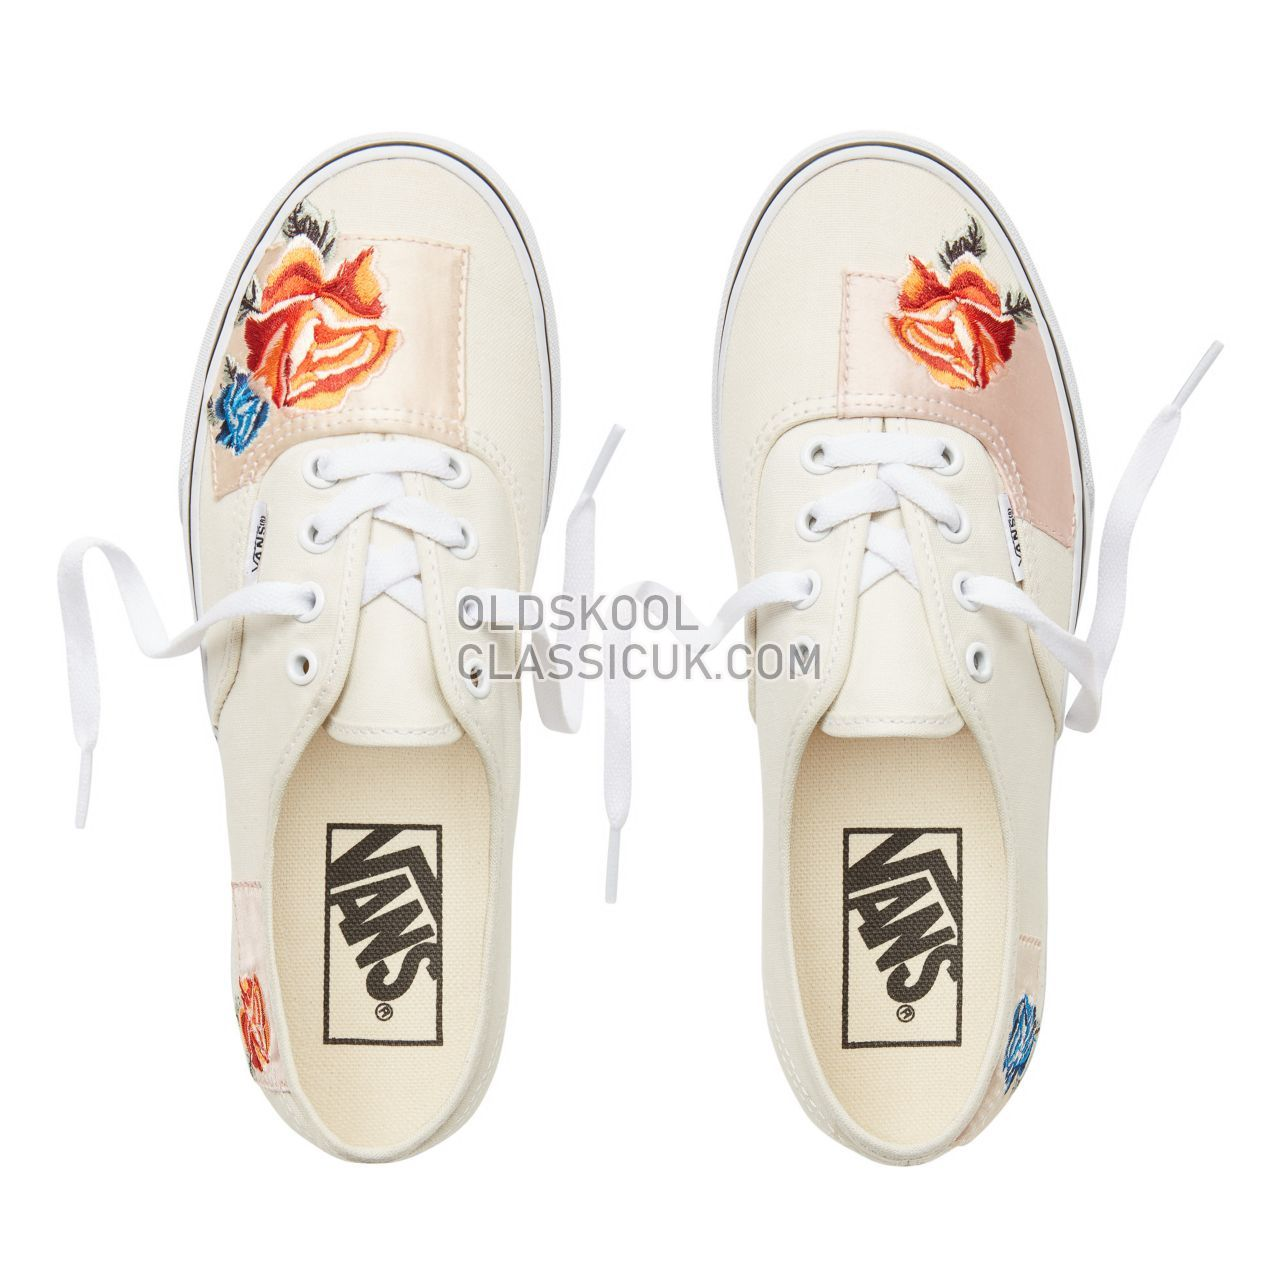 Vans Satin Patchwork Authentic Sneakers Womens (Satin Patchwork) Classic White/True White VA38EMU5Q Shoes